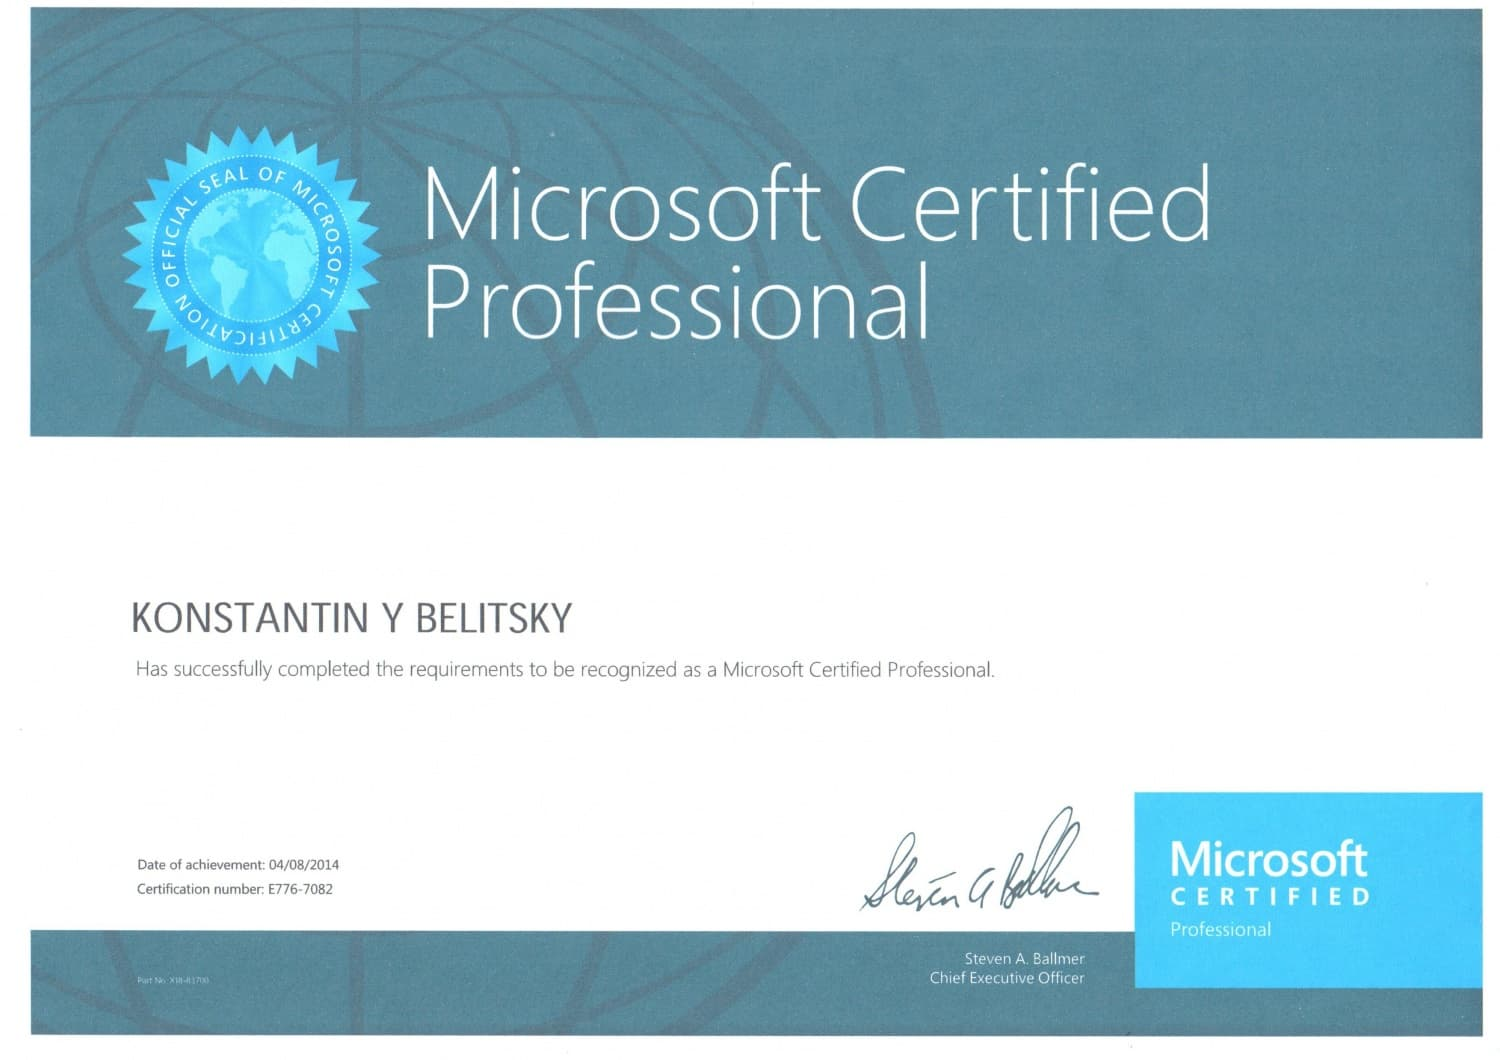 Microsoft Certified Professional